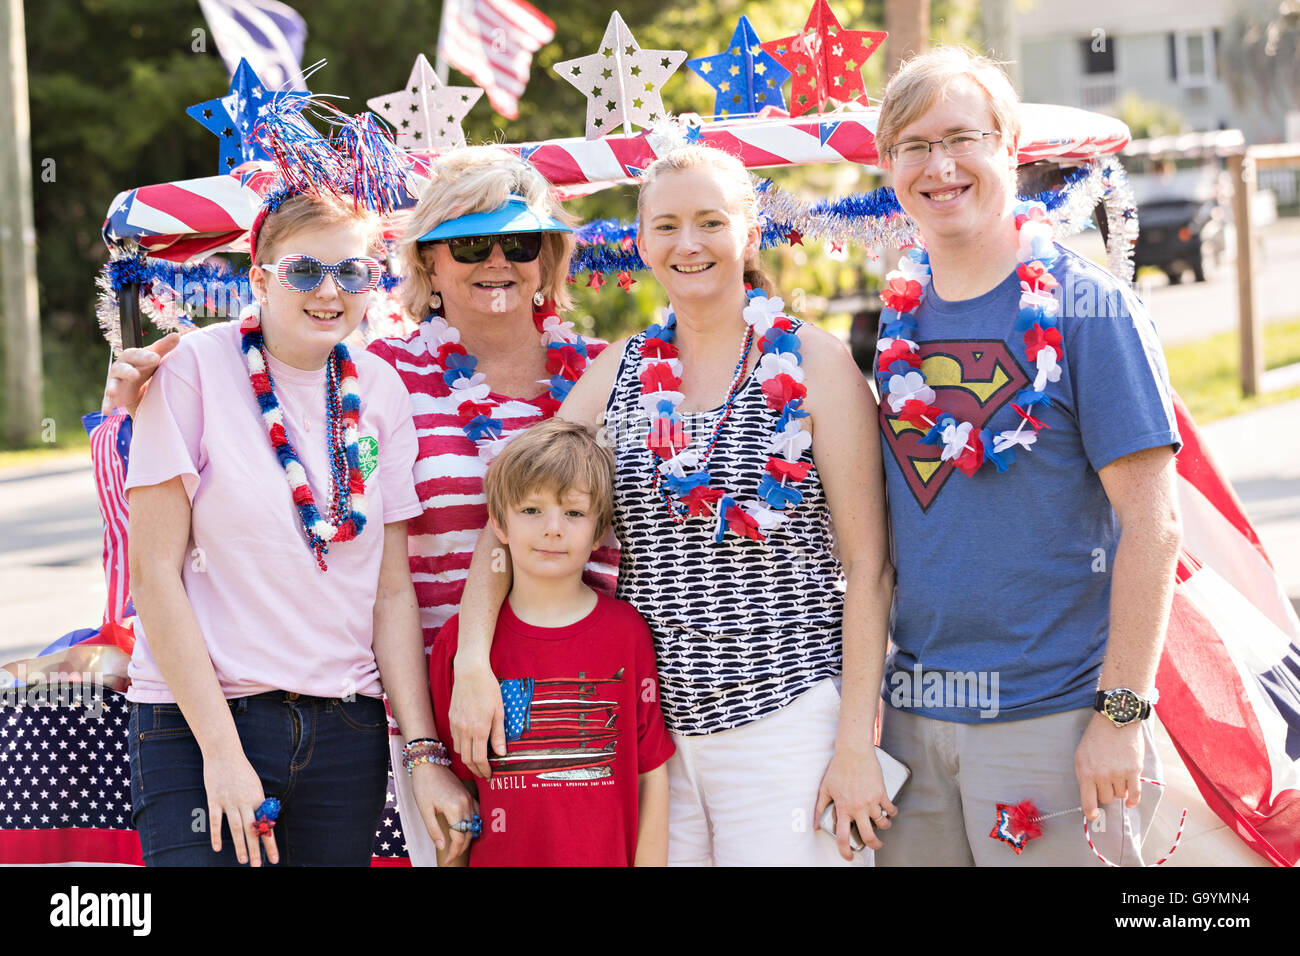 A group of residents pose for a photo in front of their decorated golf cart during the Sullivan's Island Independence - Stock Image